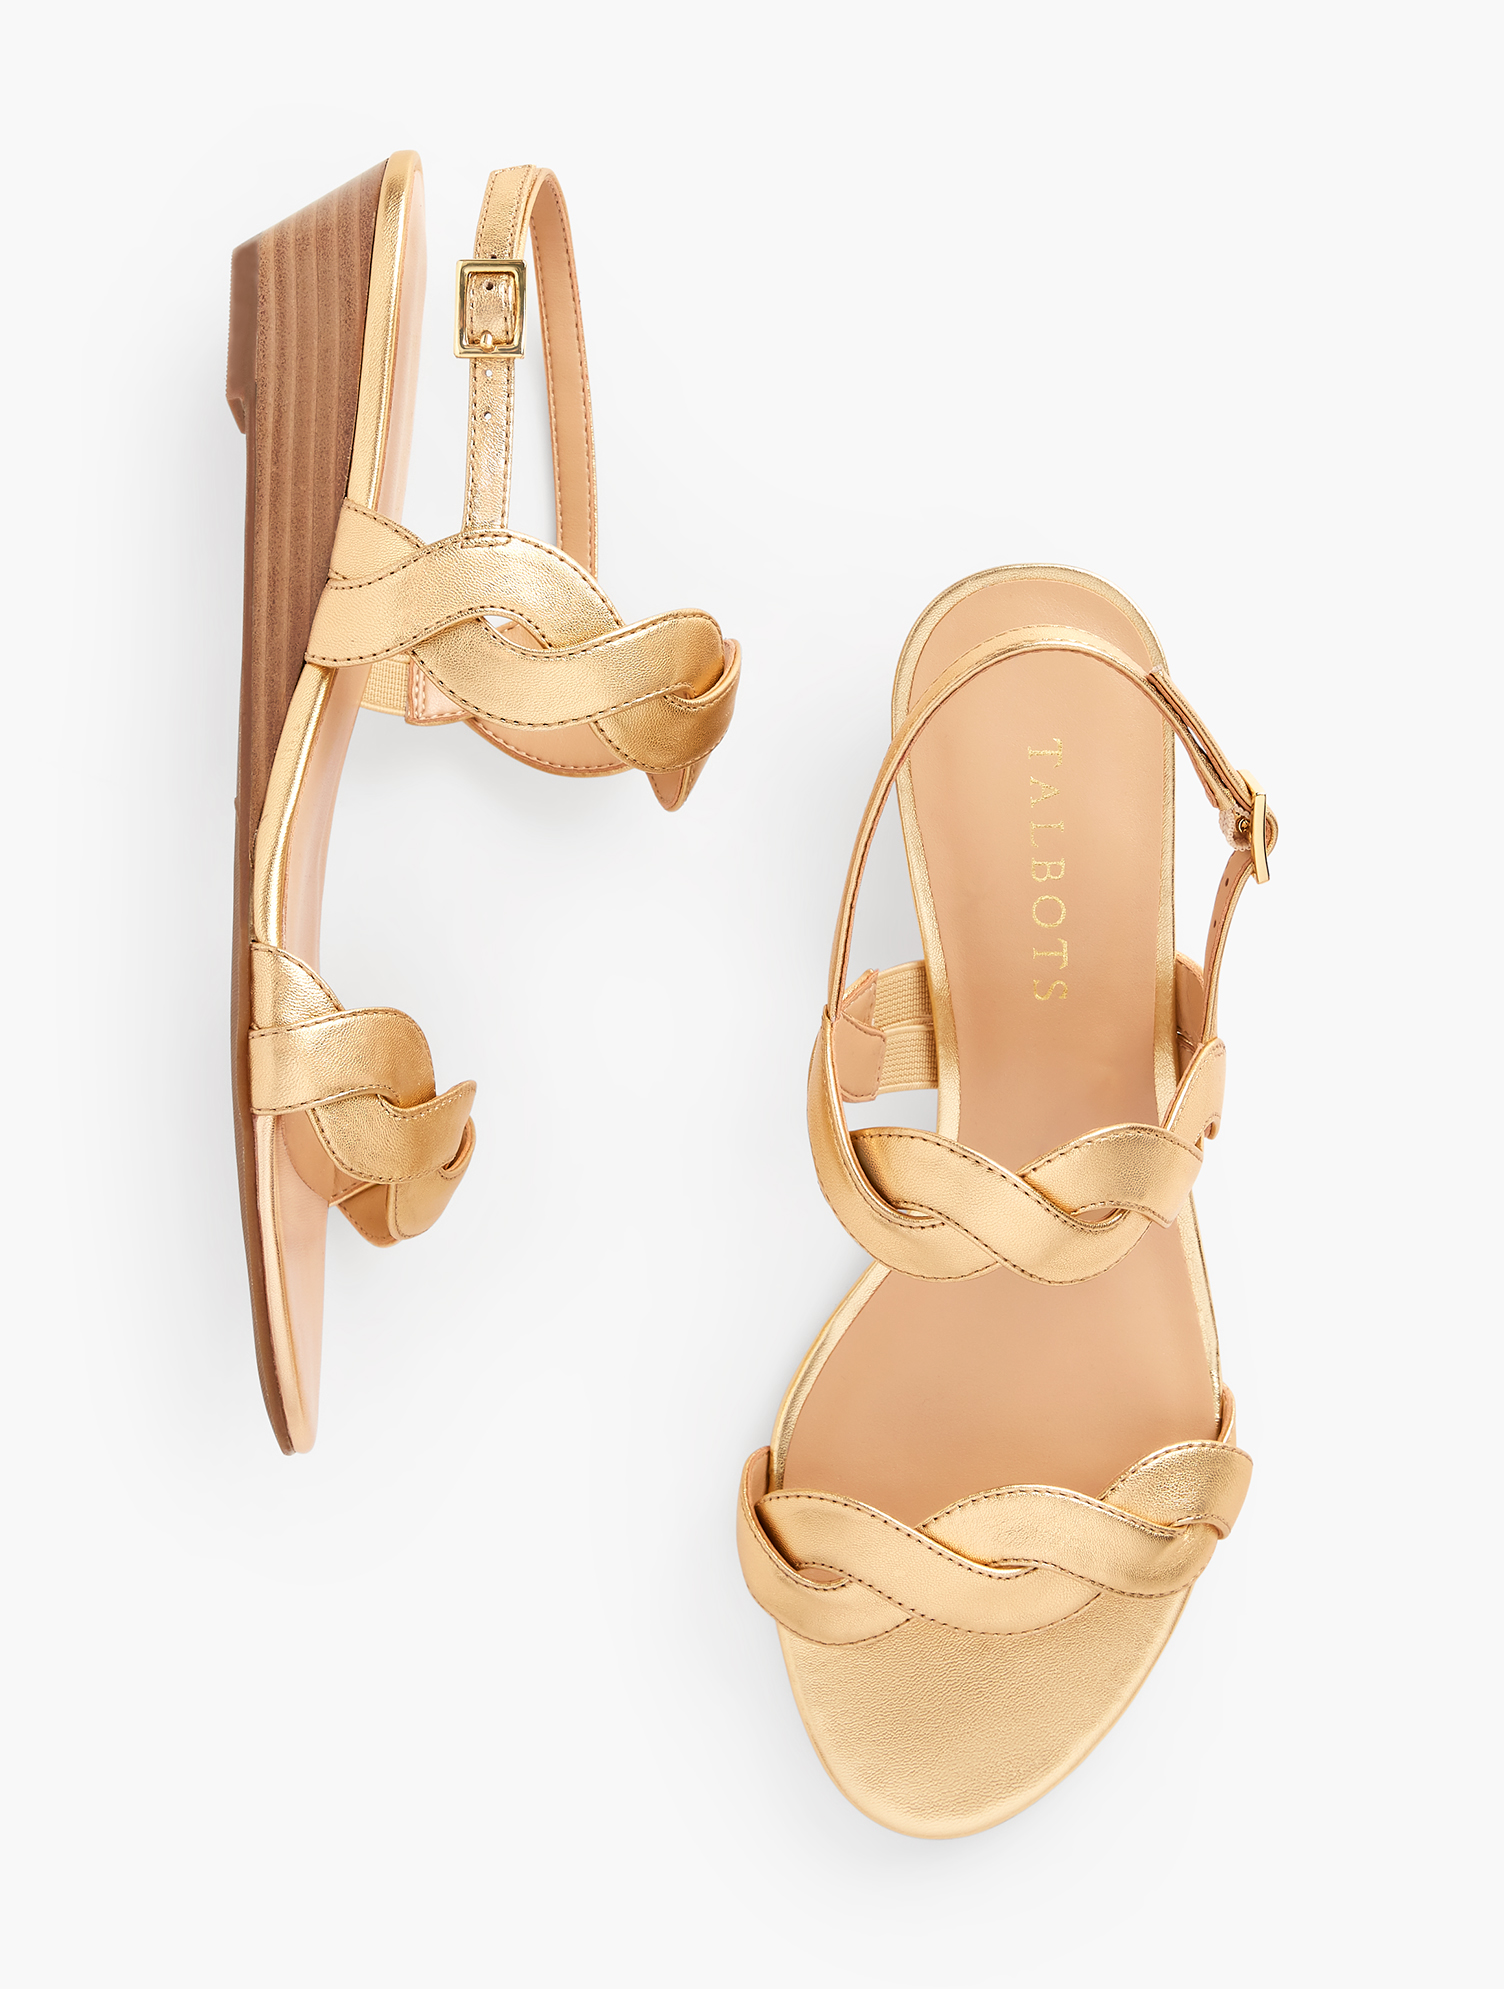 Shimmery metallic leather. Super comfortable mini wedge. Stylish twist straps. The Capri will be your new go-to sandal. Features Heel Height: 1 3/4 inches Round Toe Mini Wedge 3MM Memory Foam Imported Material: 100% Leather Capri Twist Mini Wedge Sandals - Metallic Leather - Gold - 9-1/2M Talbots